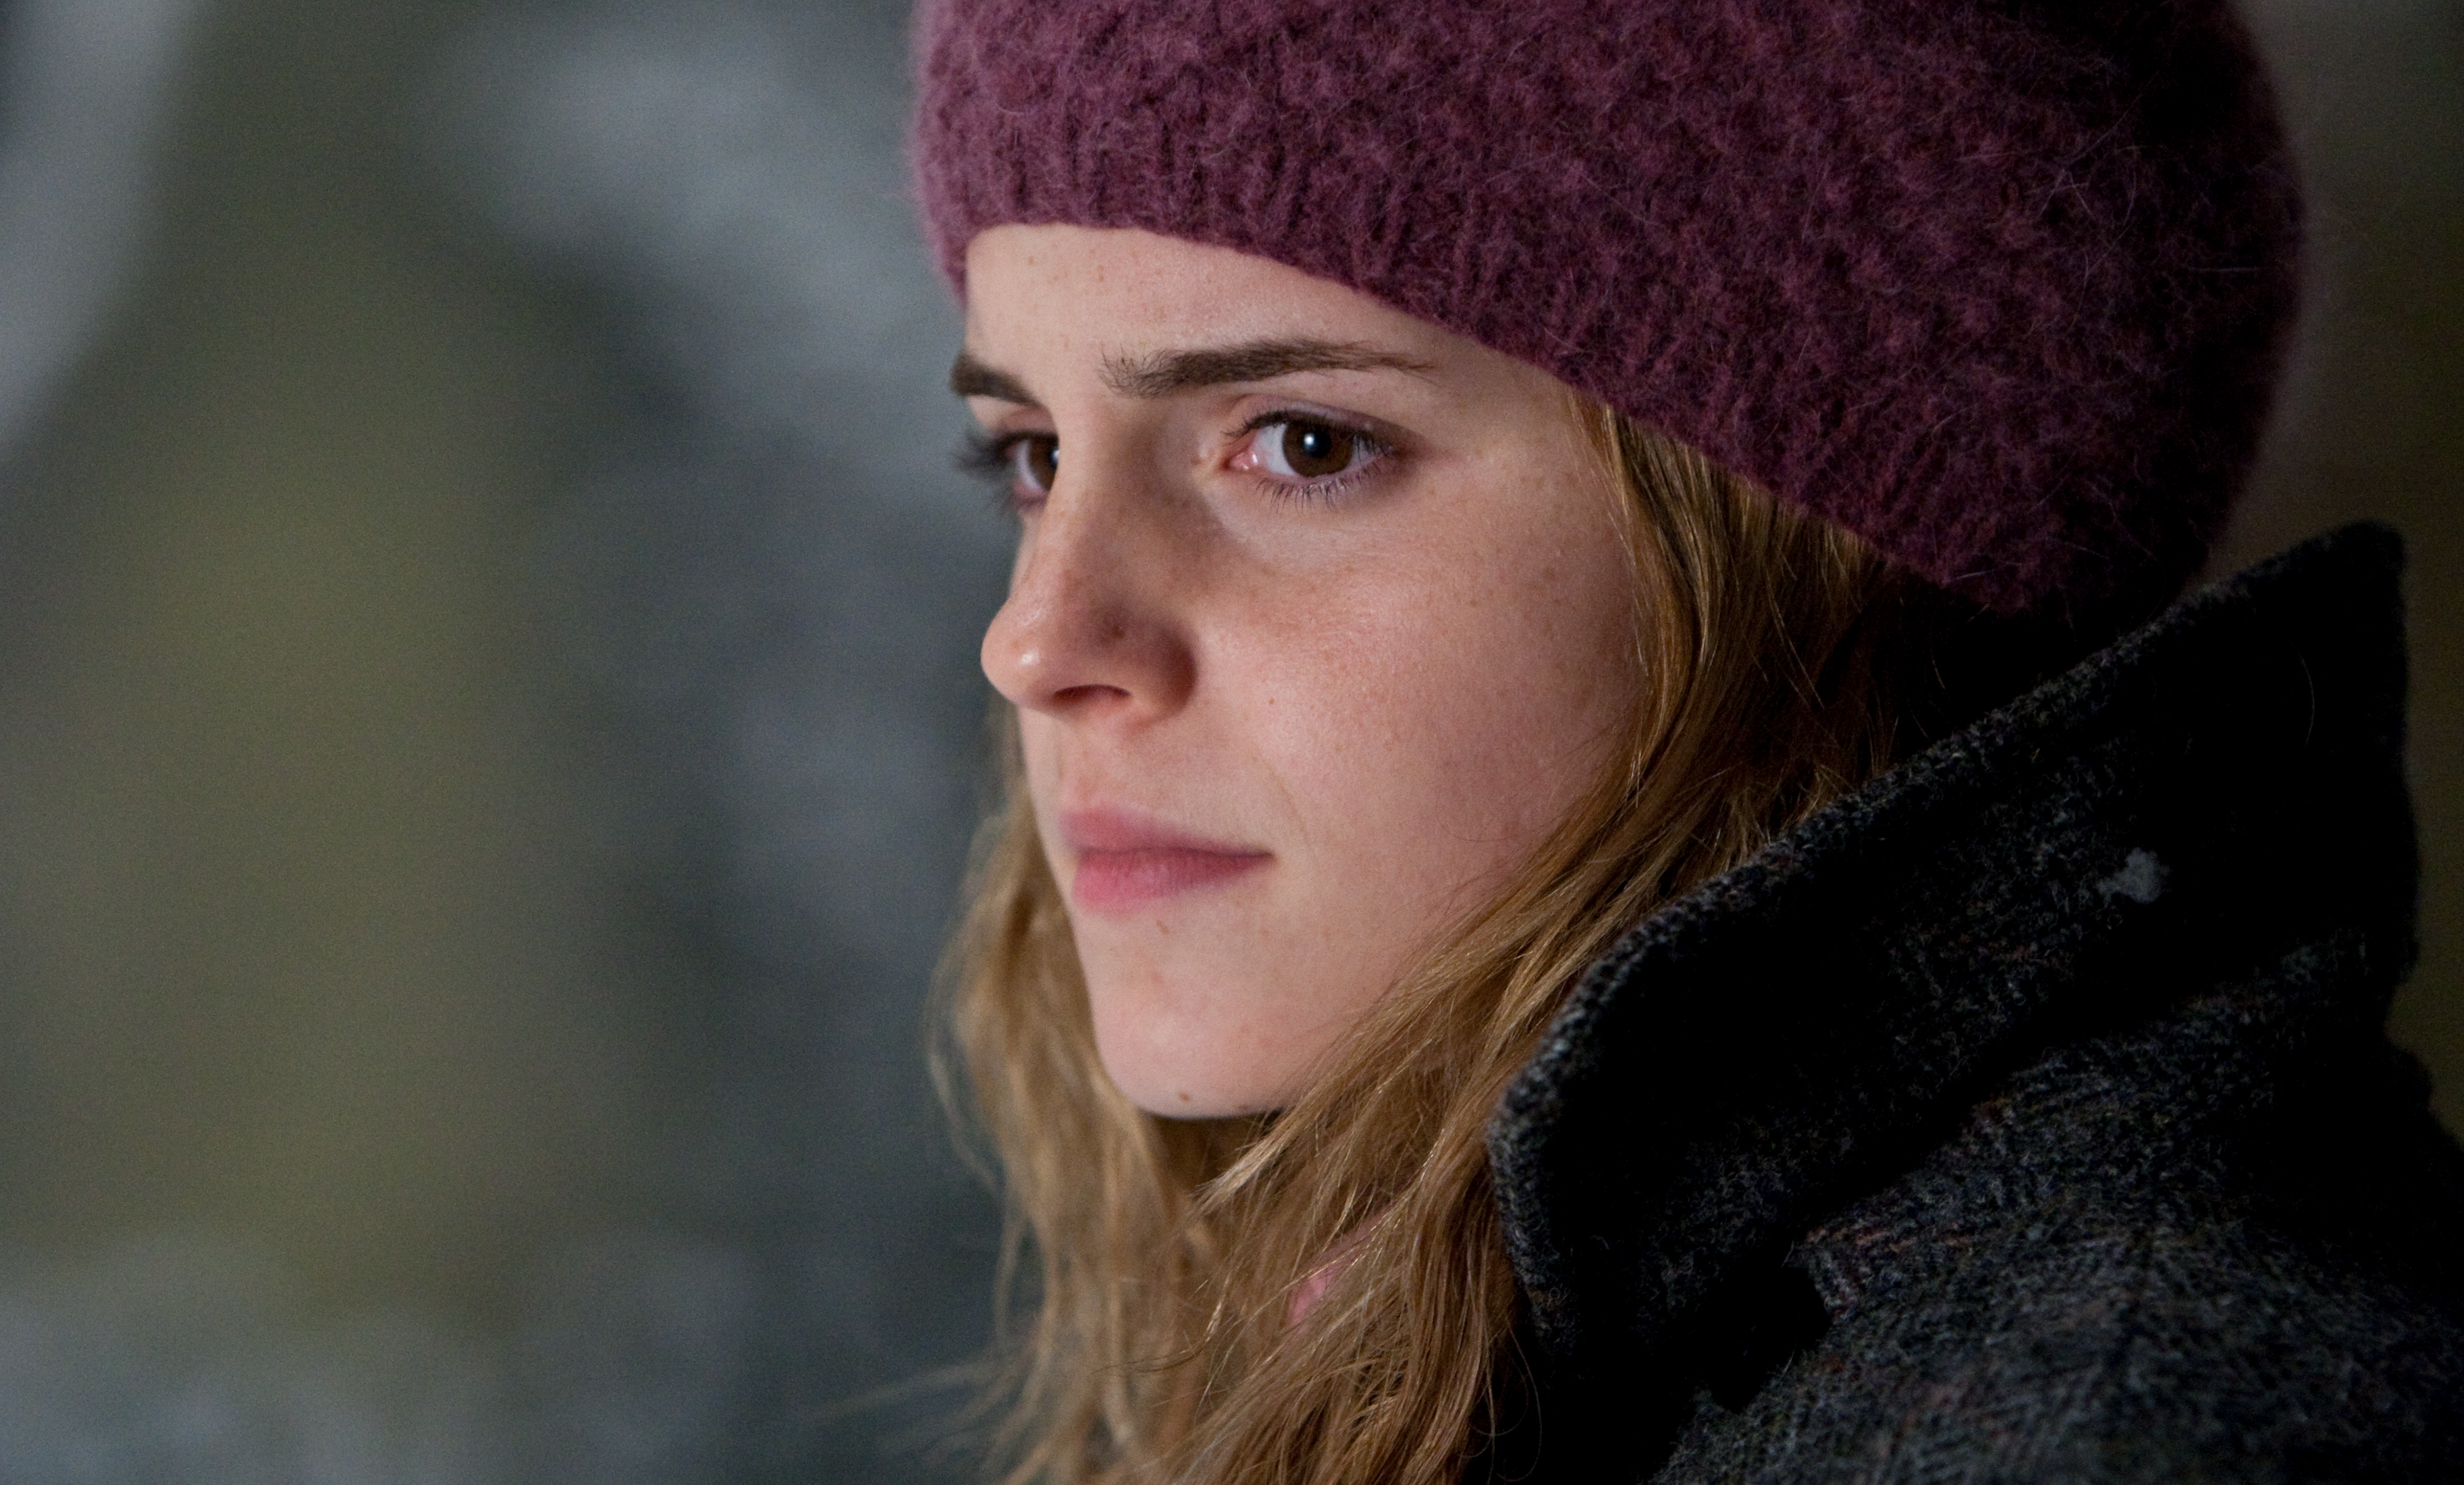 HP-F7-hermione-looking-sad-article-insert